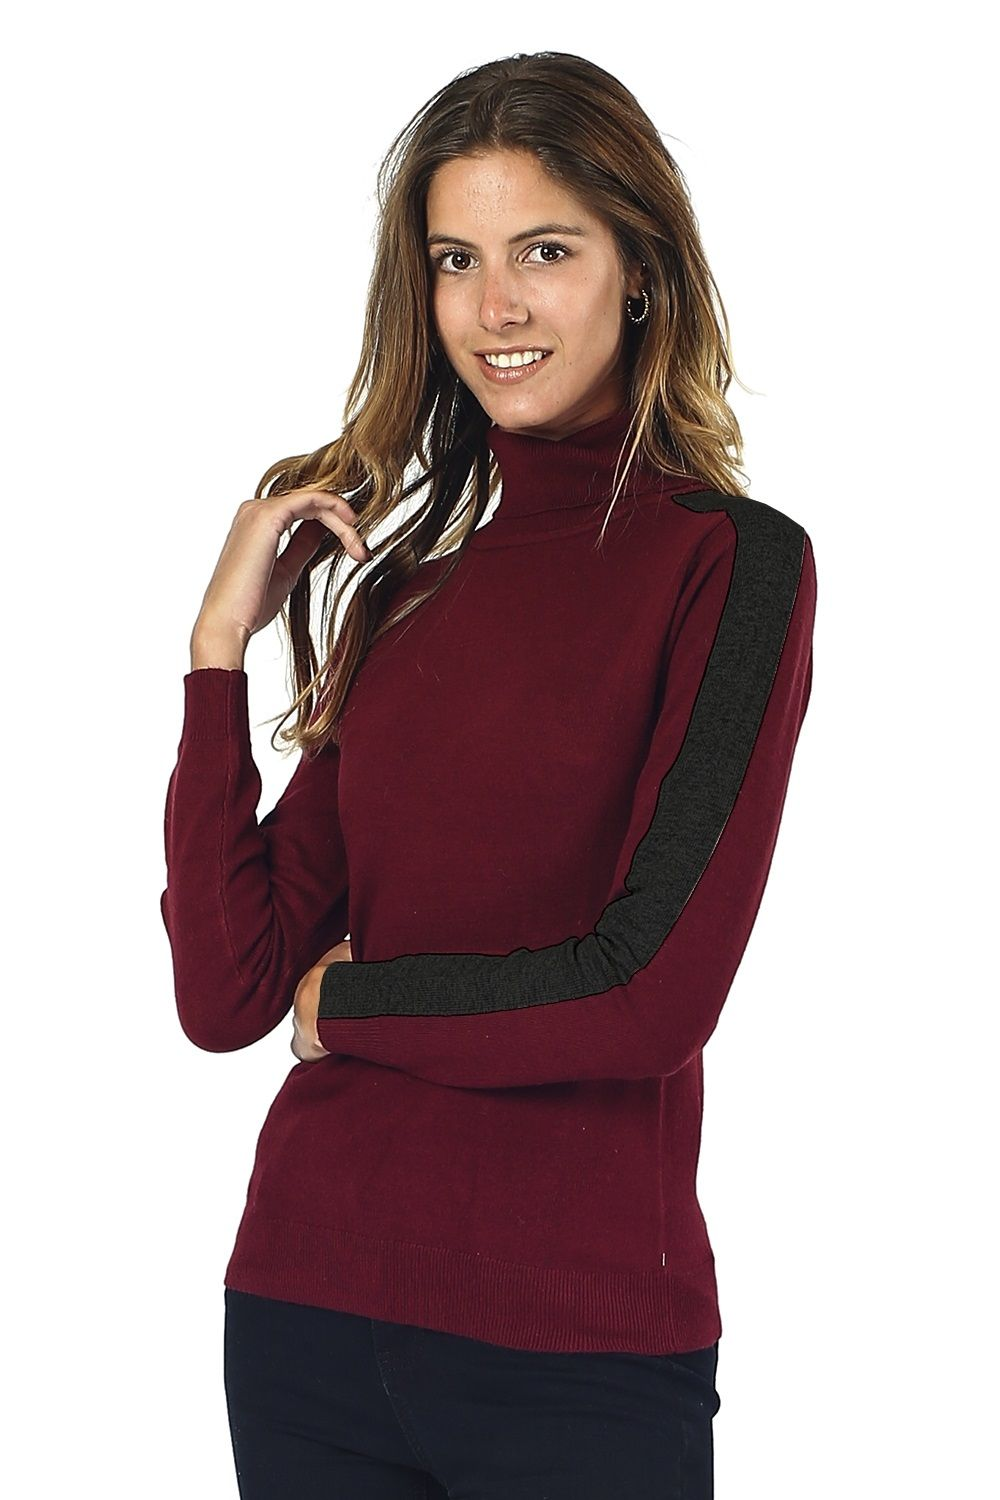 William De Faye Turtleneck Sweater with Two-tone Sleeves in Maroon